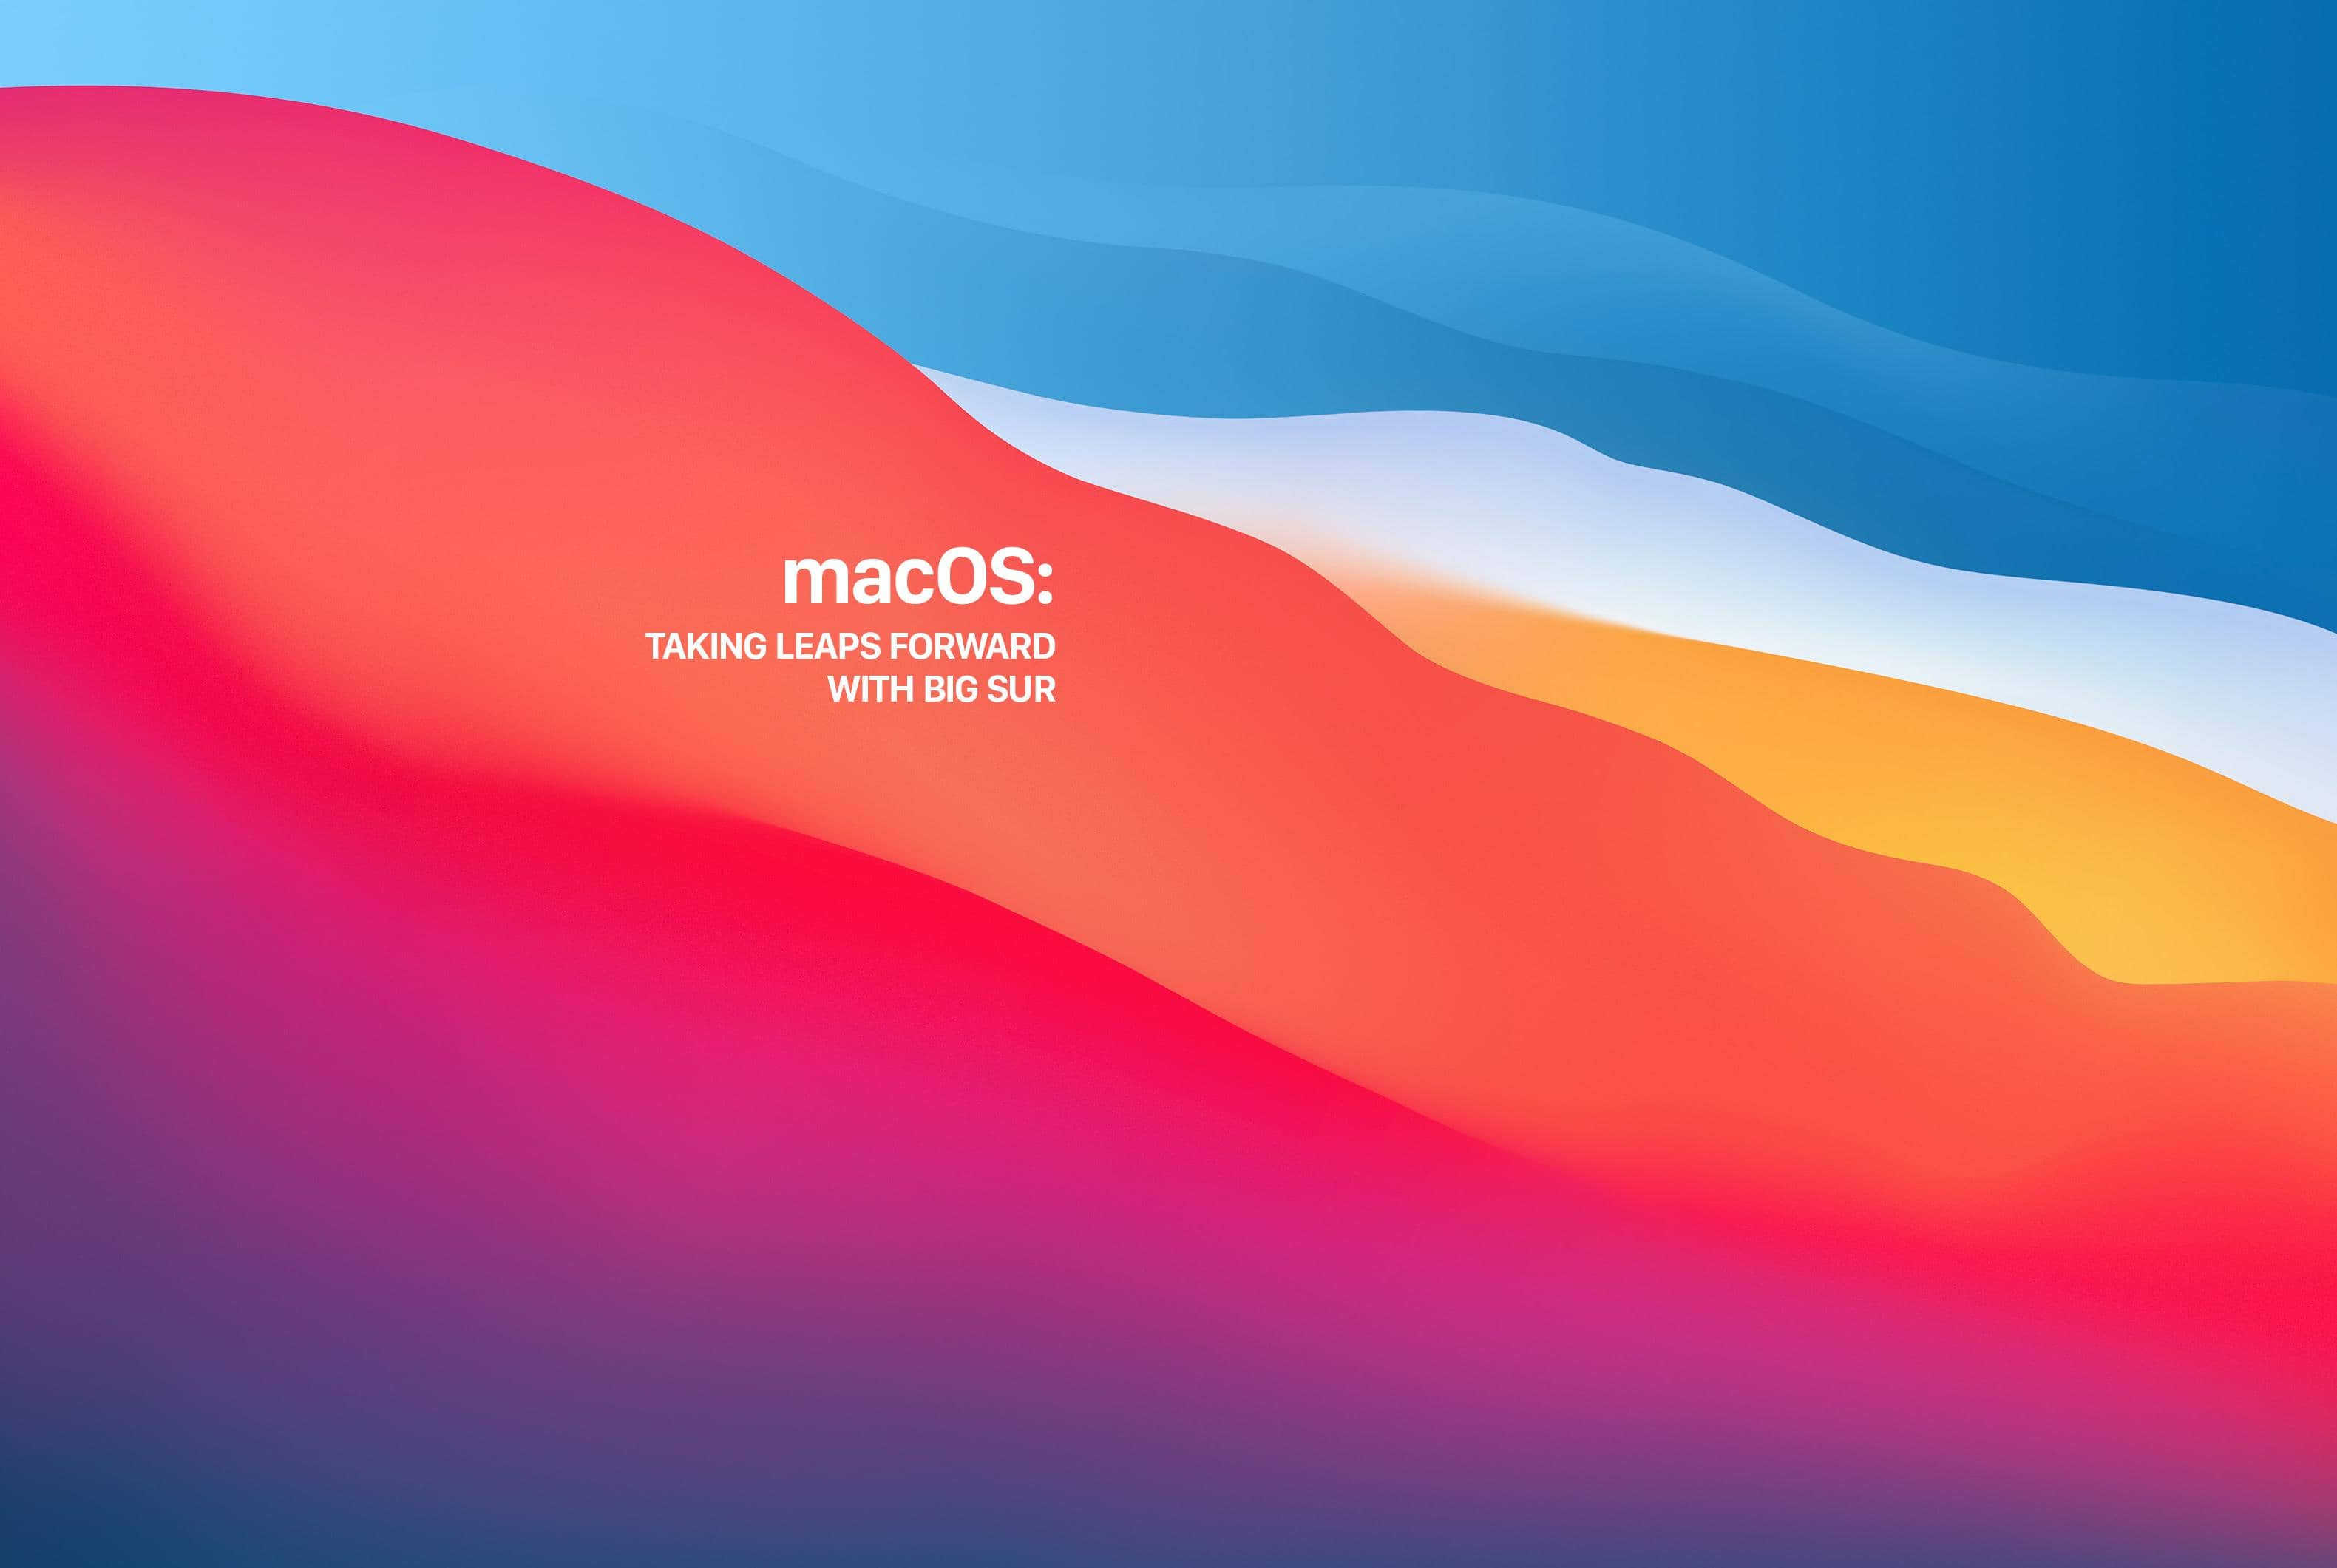 macOS: TAKING LEAPS FORWARD WITH BIG SUR